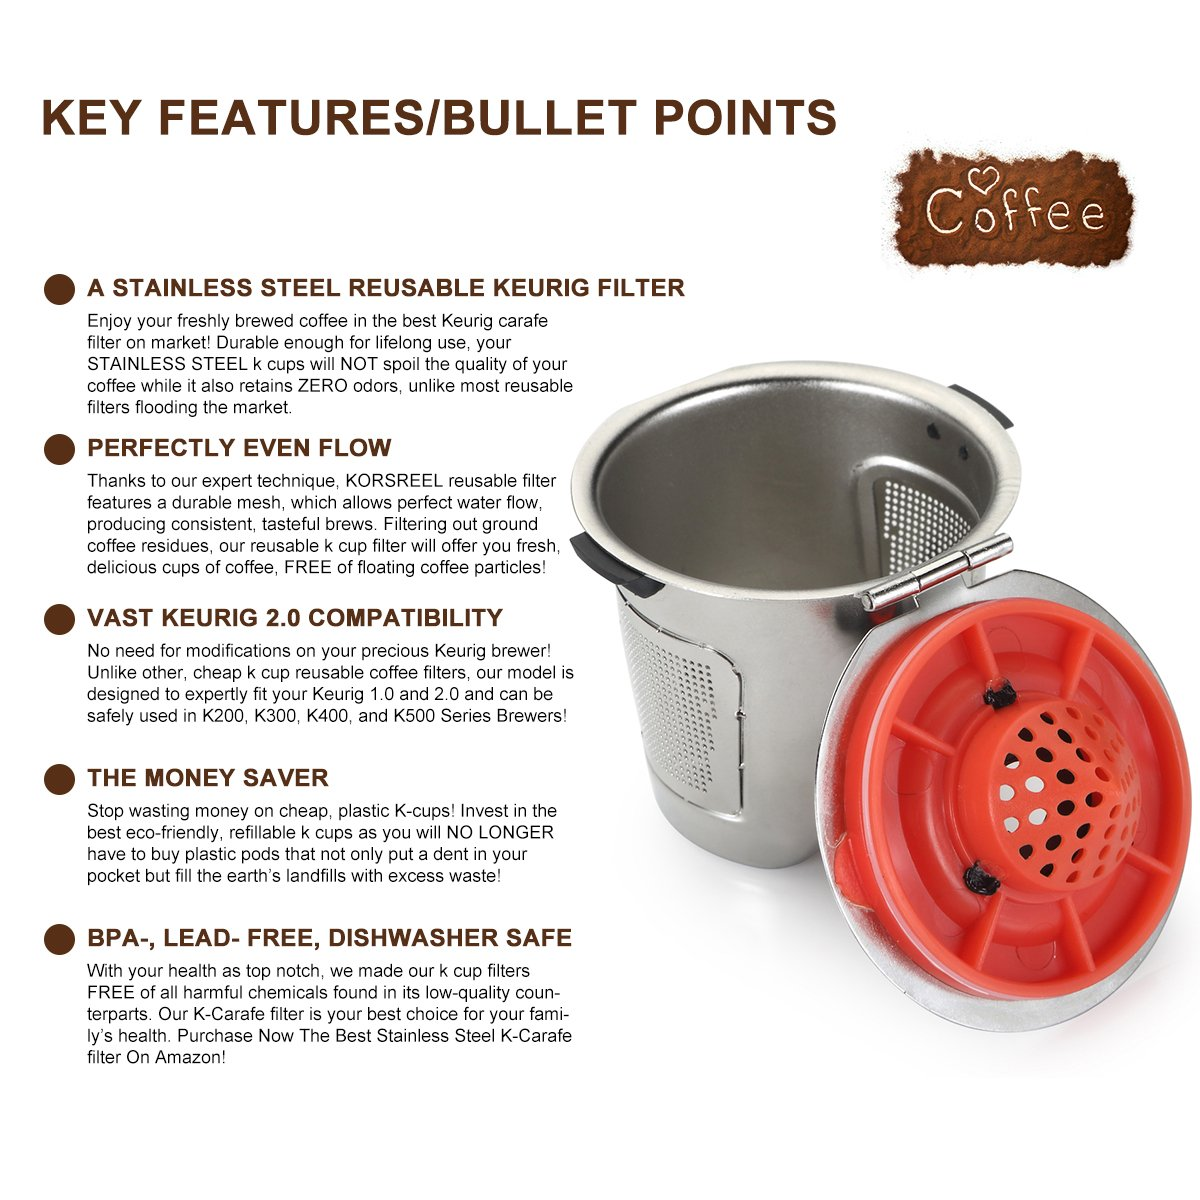 amazoncom korsreel premium 2pack stainless steel reusable k cups top k cup refillable coffee filter compatible with keurig brewers 10 u0026 20 for k200 - Cheap Keurig